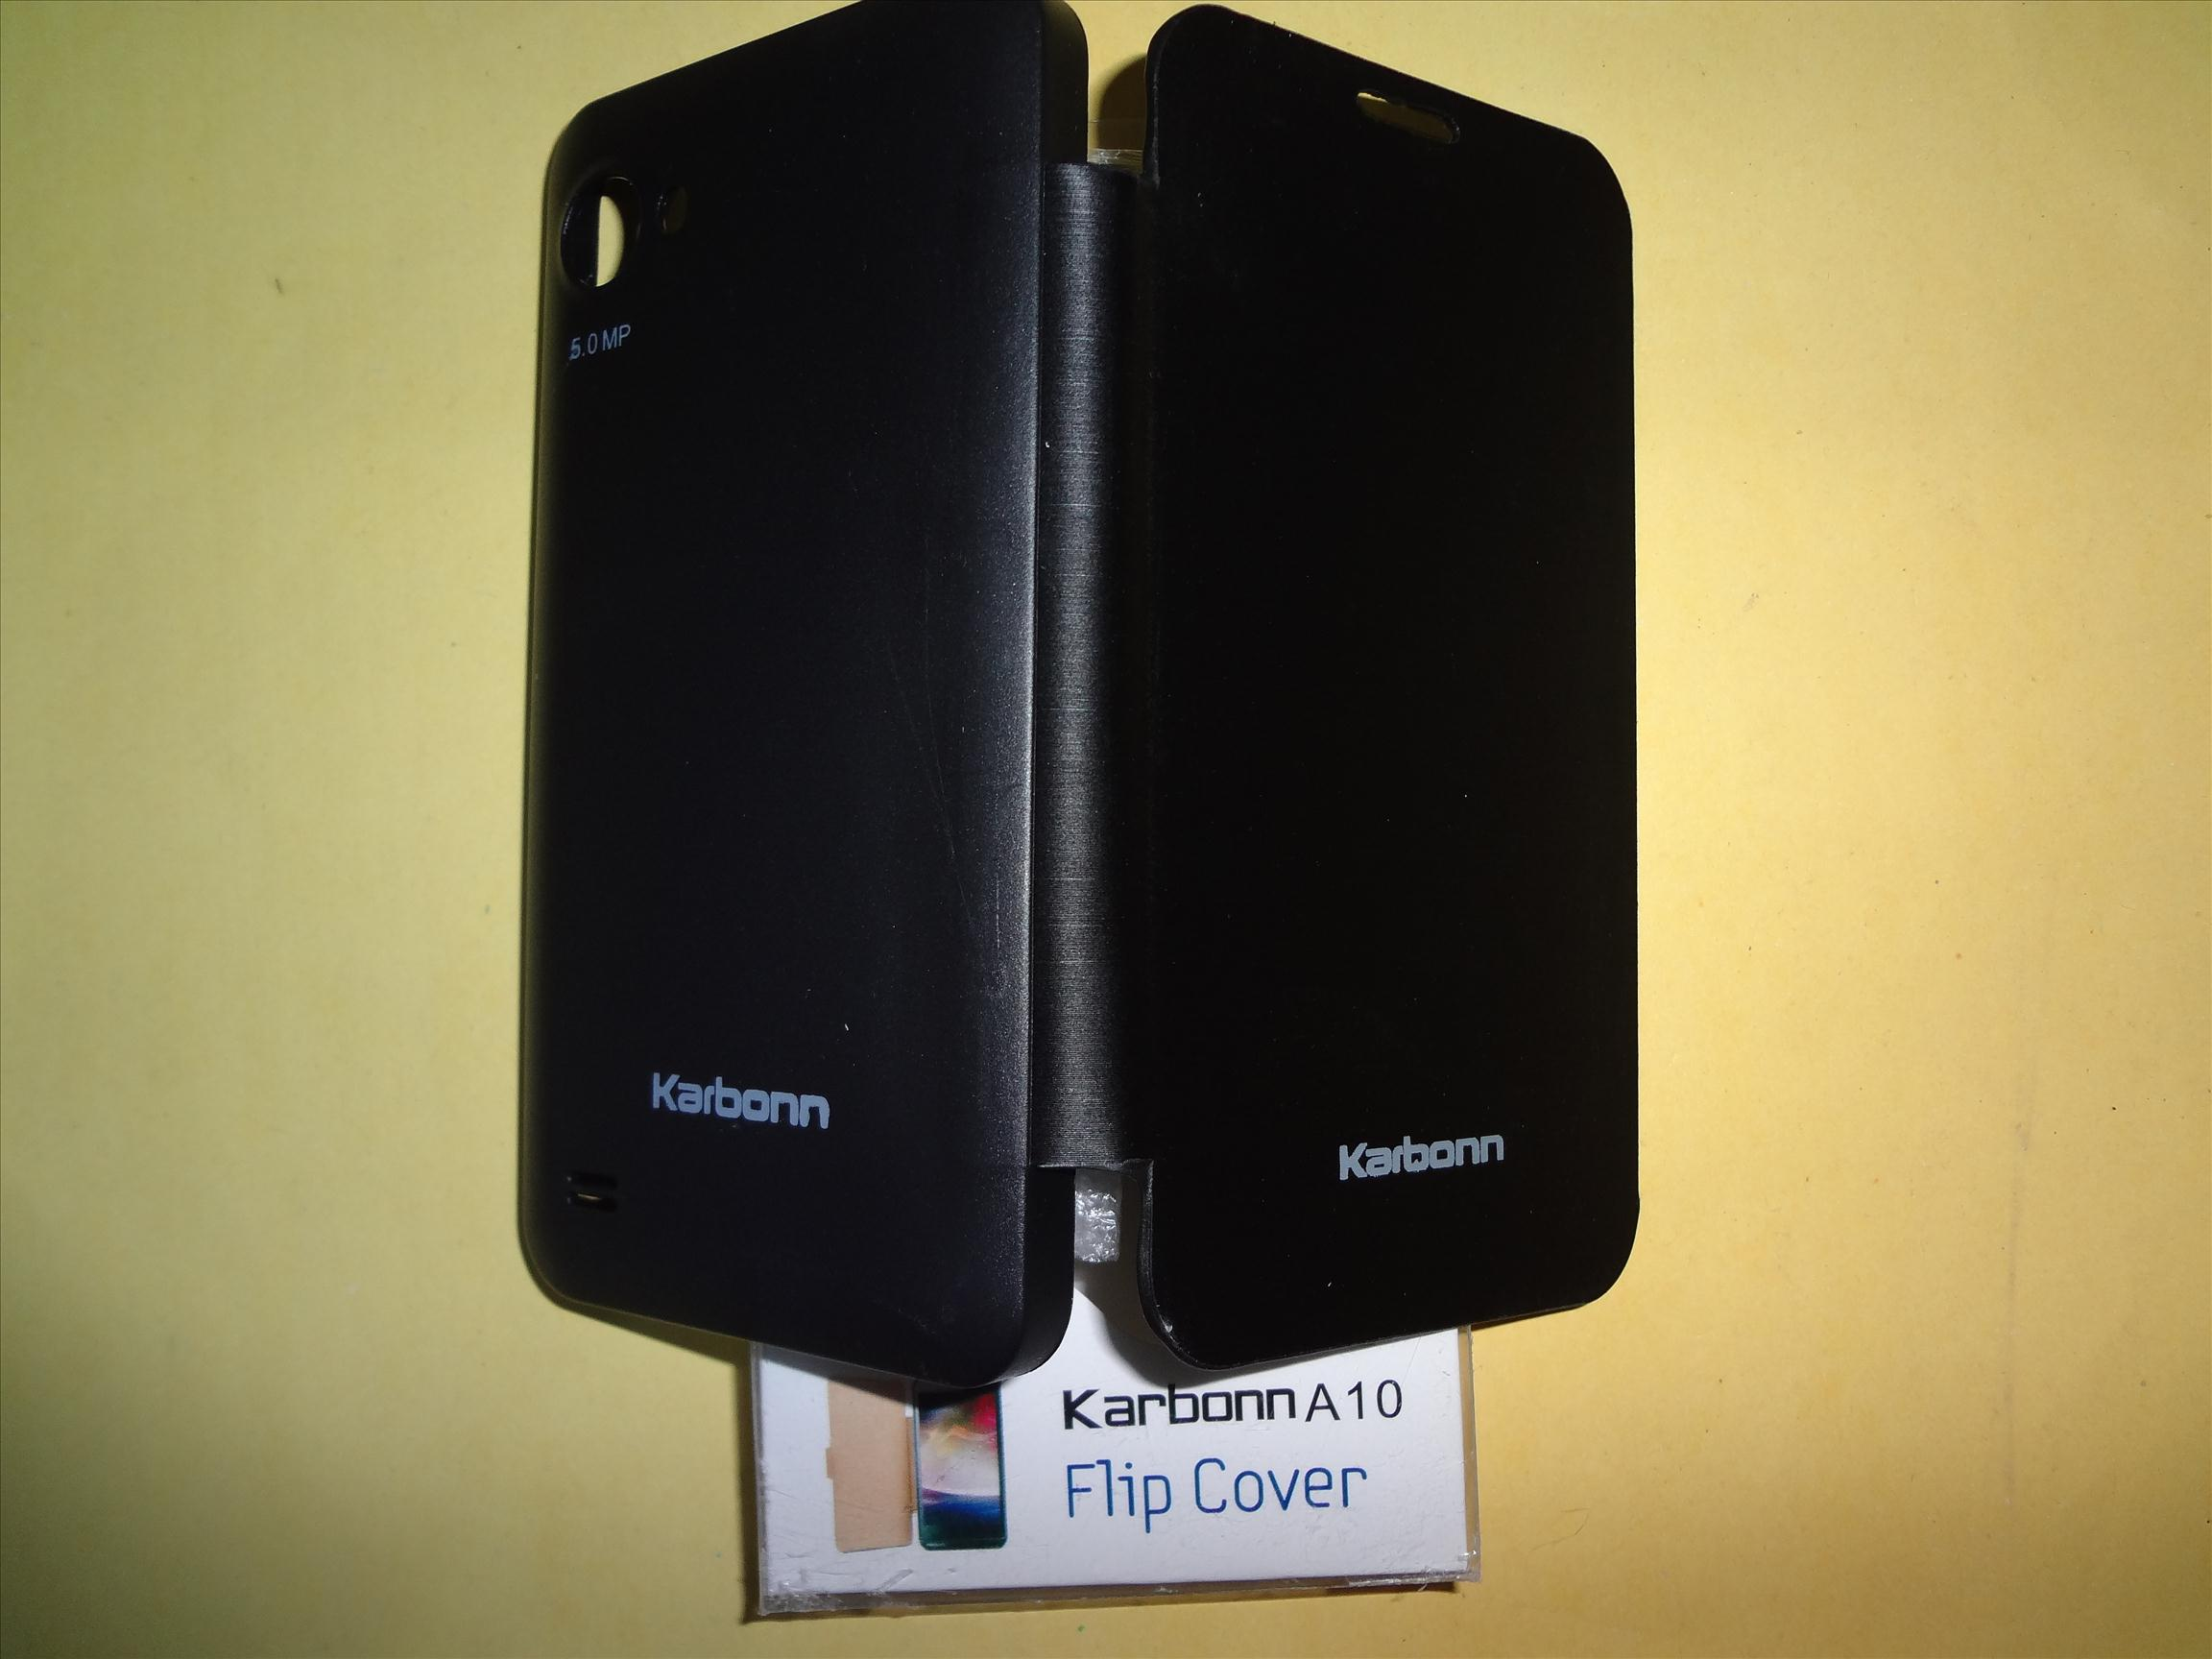 Karbonn A10 Flip Cover - Black at Best Prices - Shopclues ...